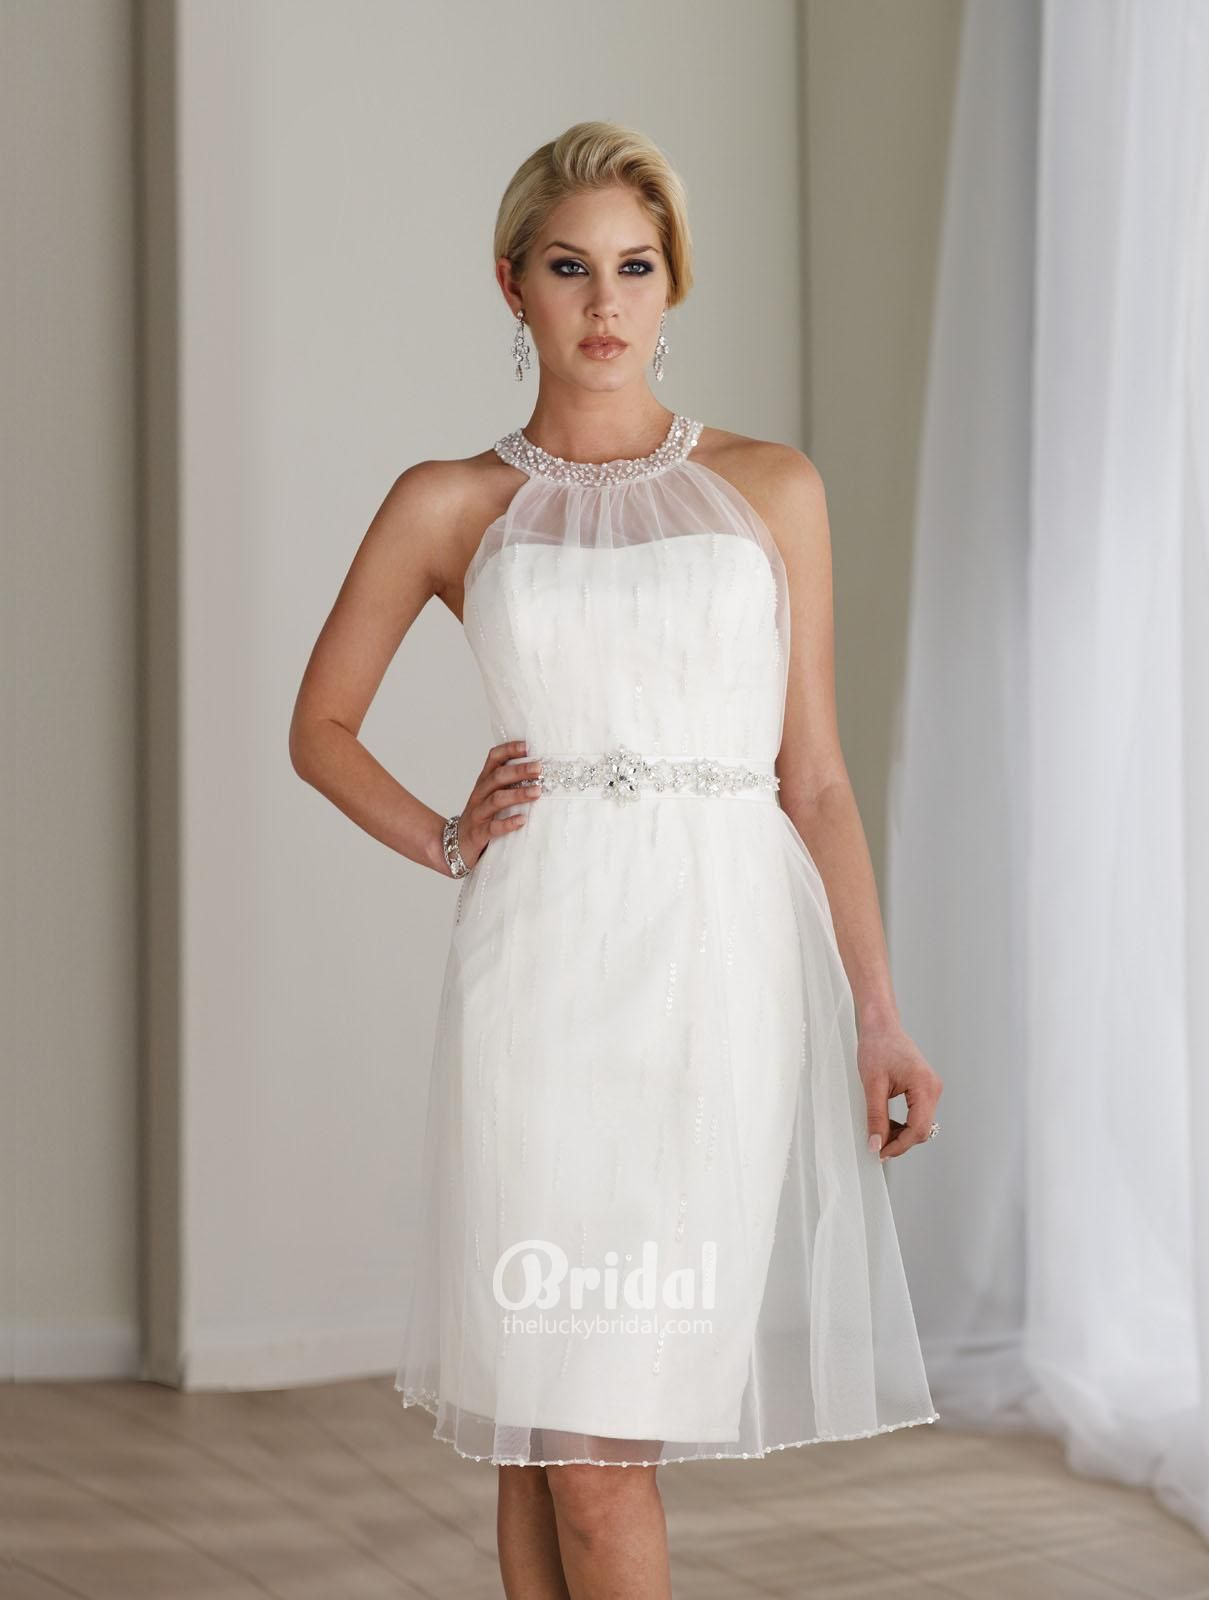 Vow Renewal Dress For 30th Anniversary Casual wedding Wedding